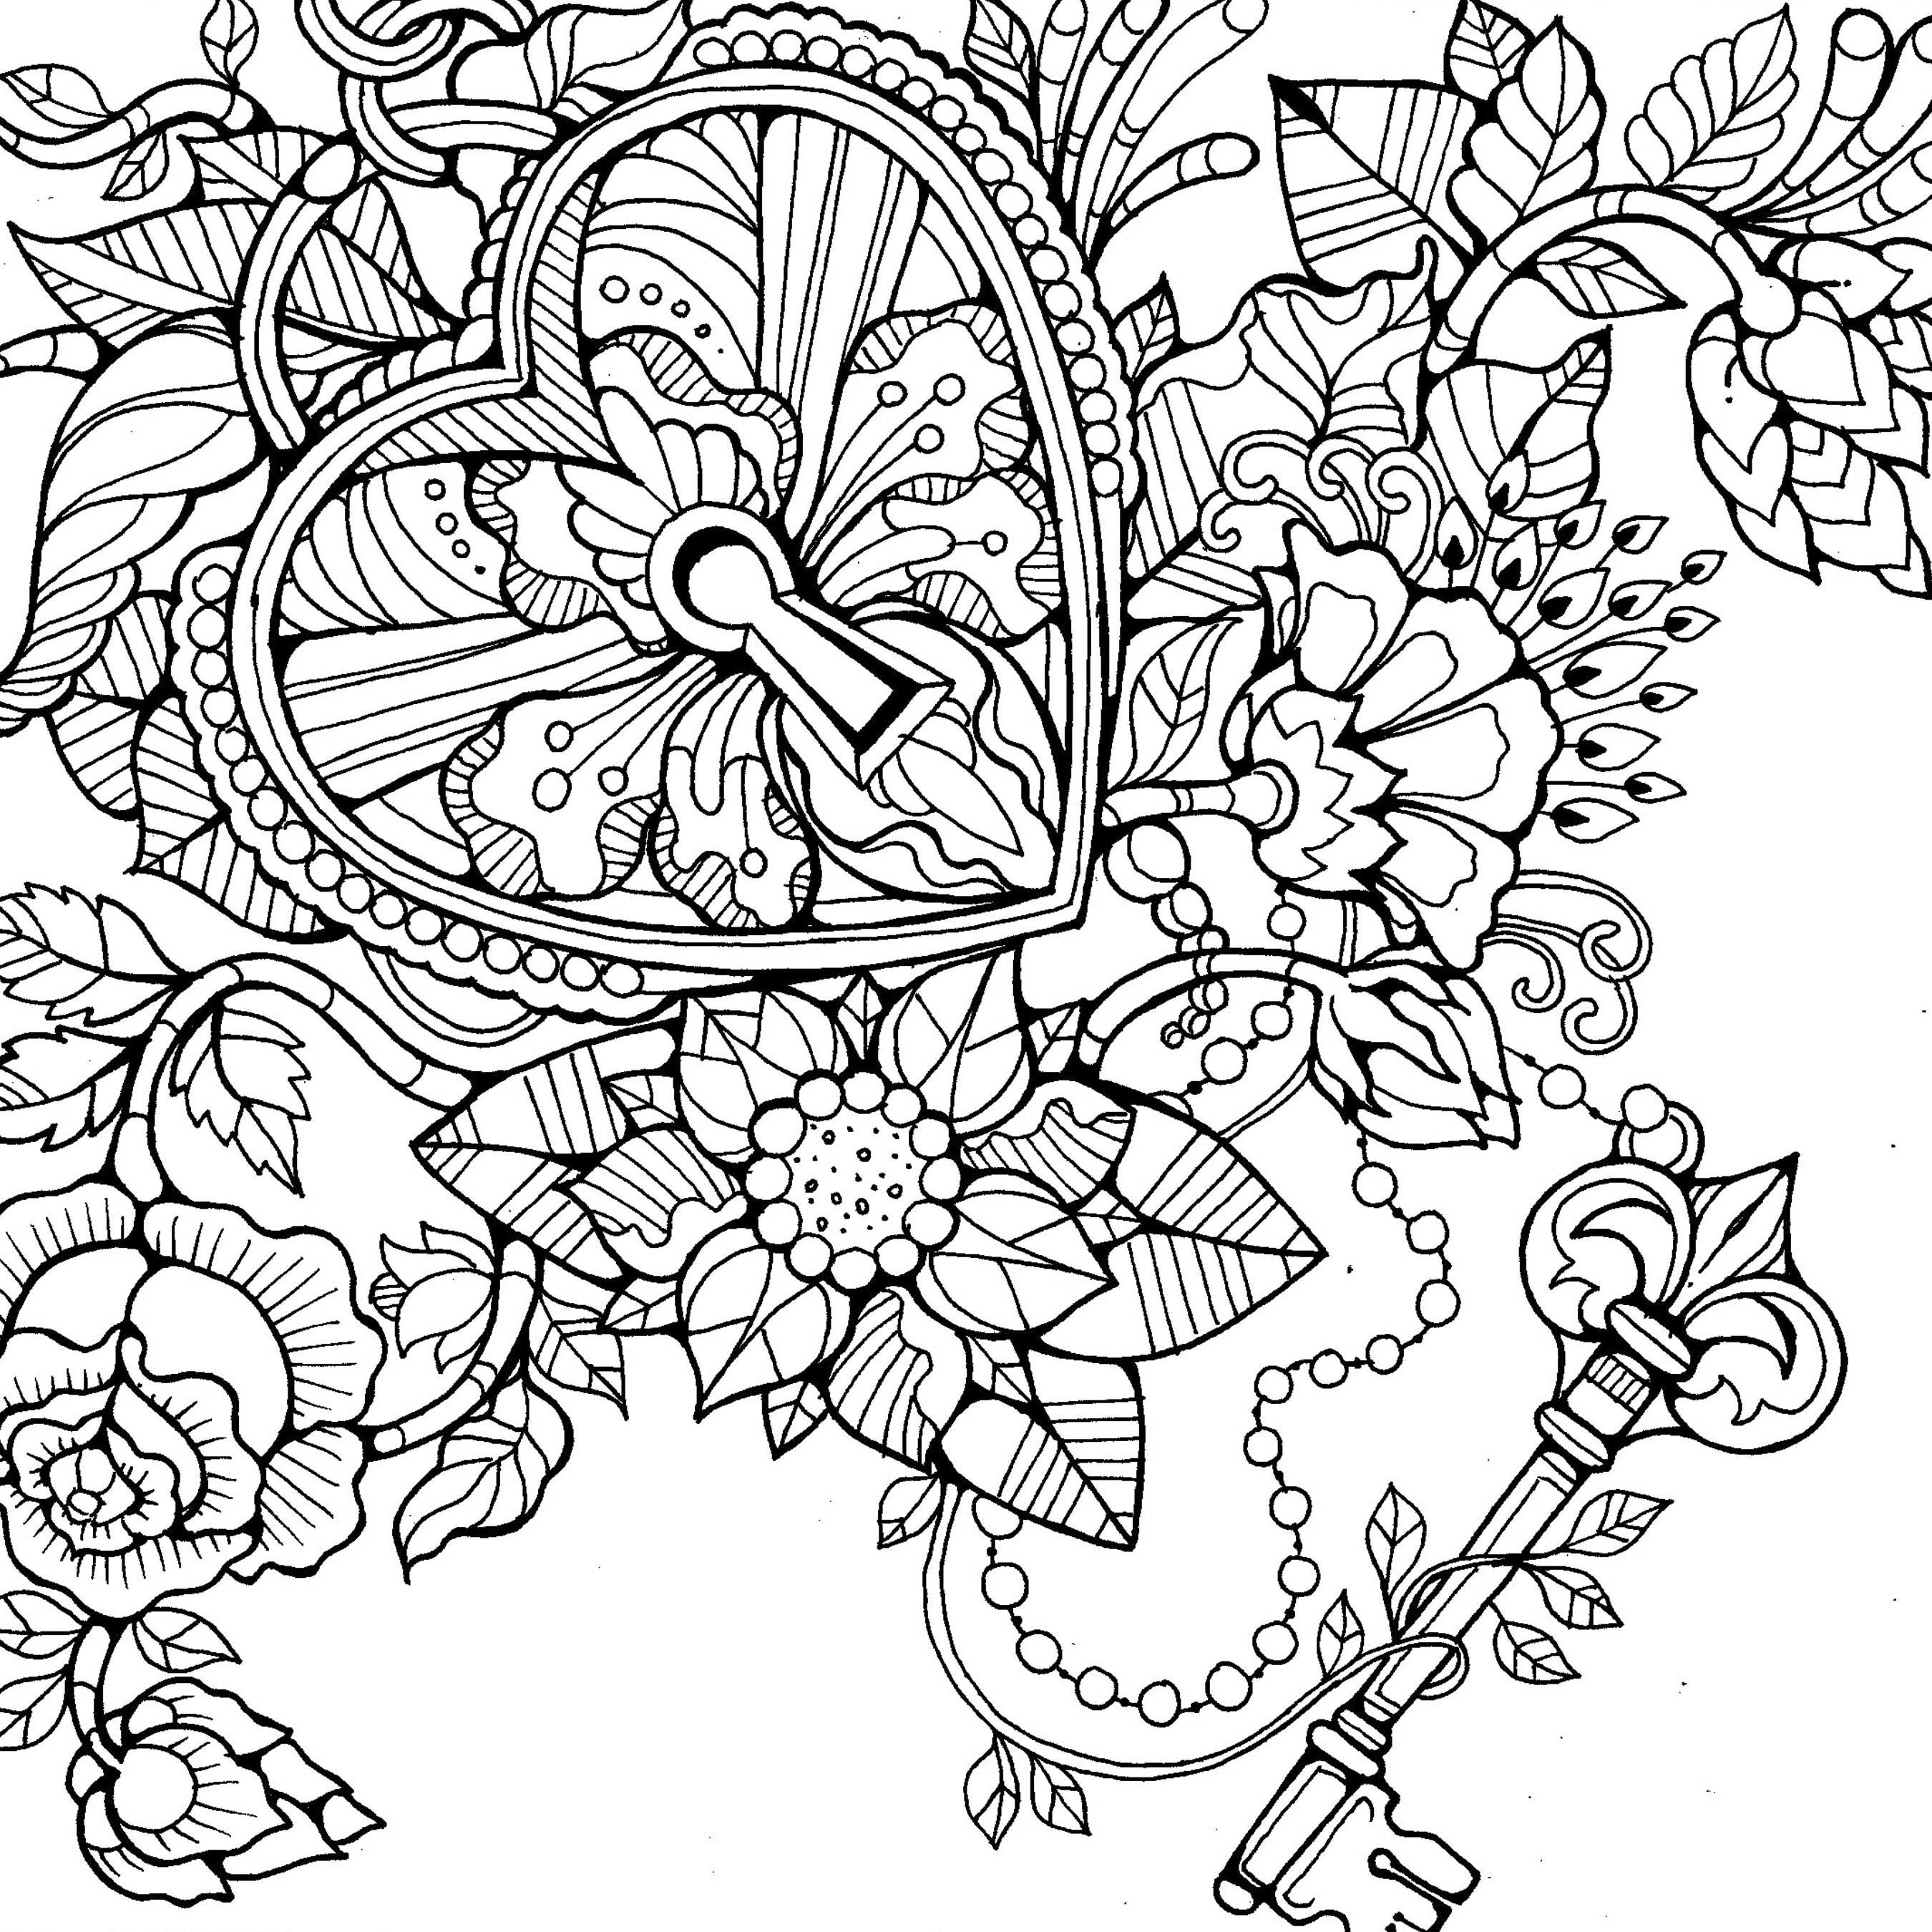 Colouring Pages by Dee Mans on Behance | verf | Pinterest ...